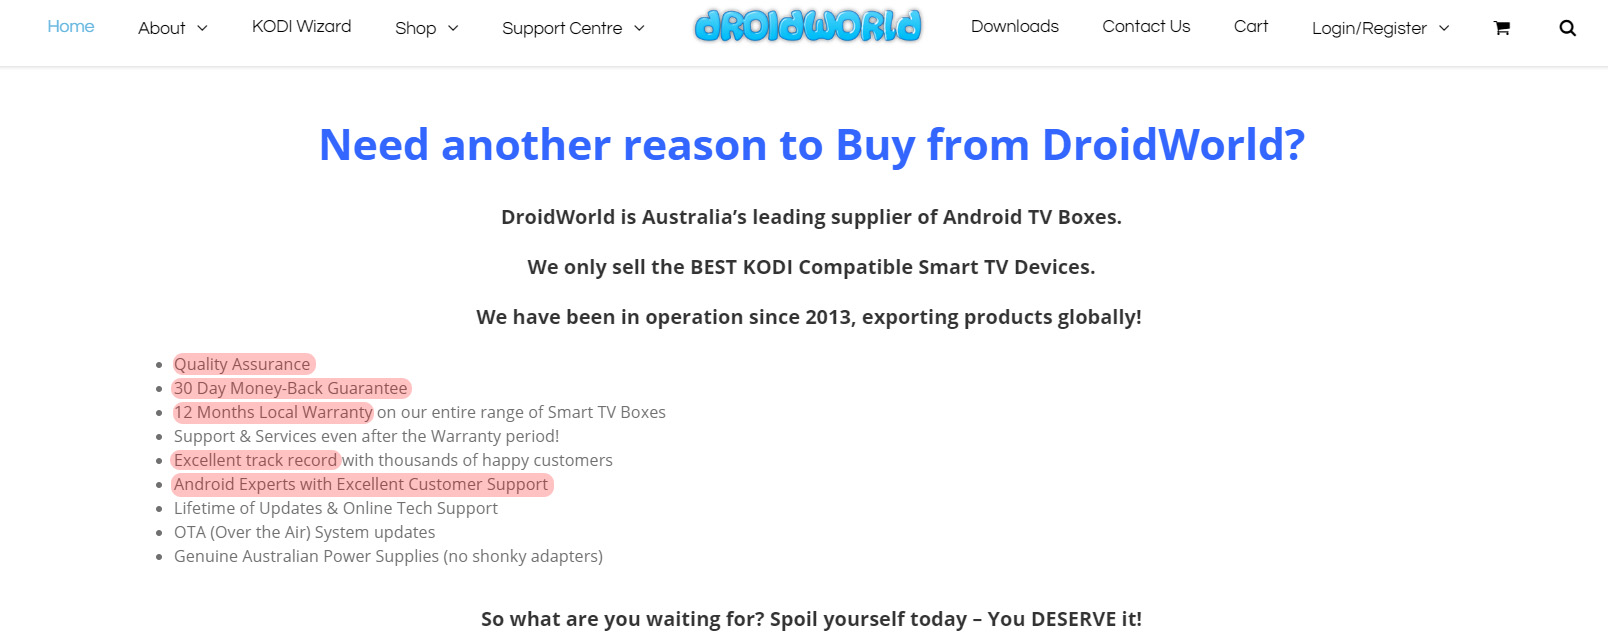 Support Centre – DROIDWORLD – Android Smart TV Box Retailer – Best